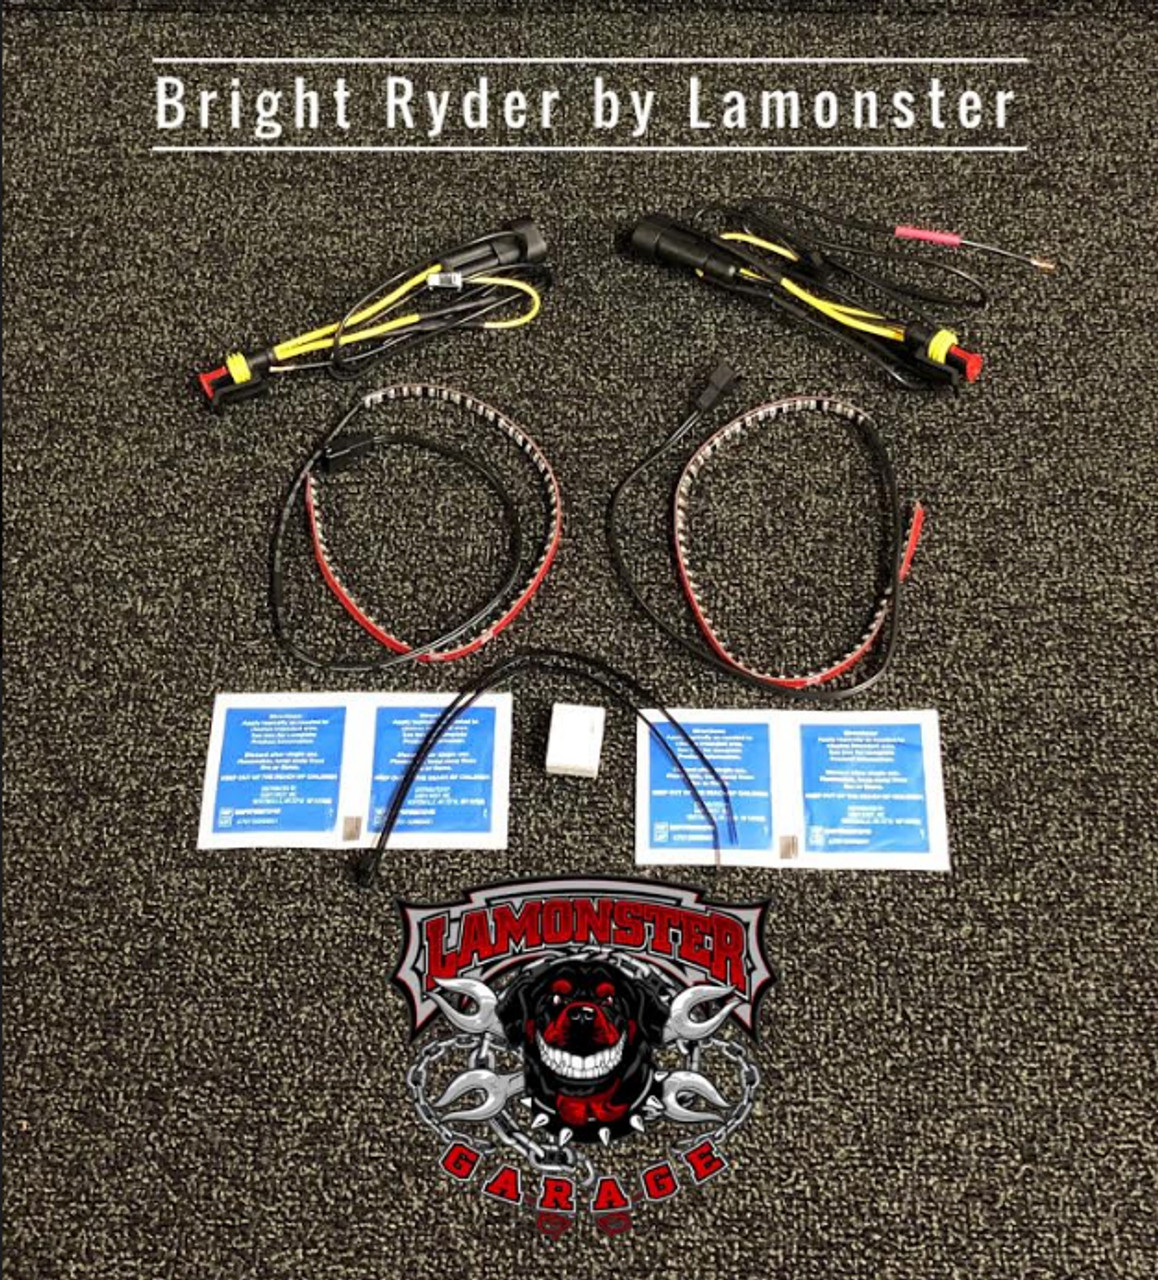 "Can-Am Spyder F3T Longhorn Mirror Light Kit (LG-3016) (Bright Ryder by lamonster) ""Included in kit"""